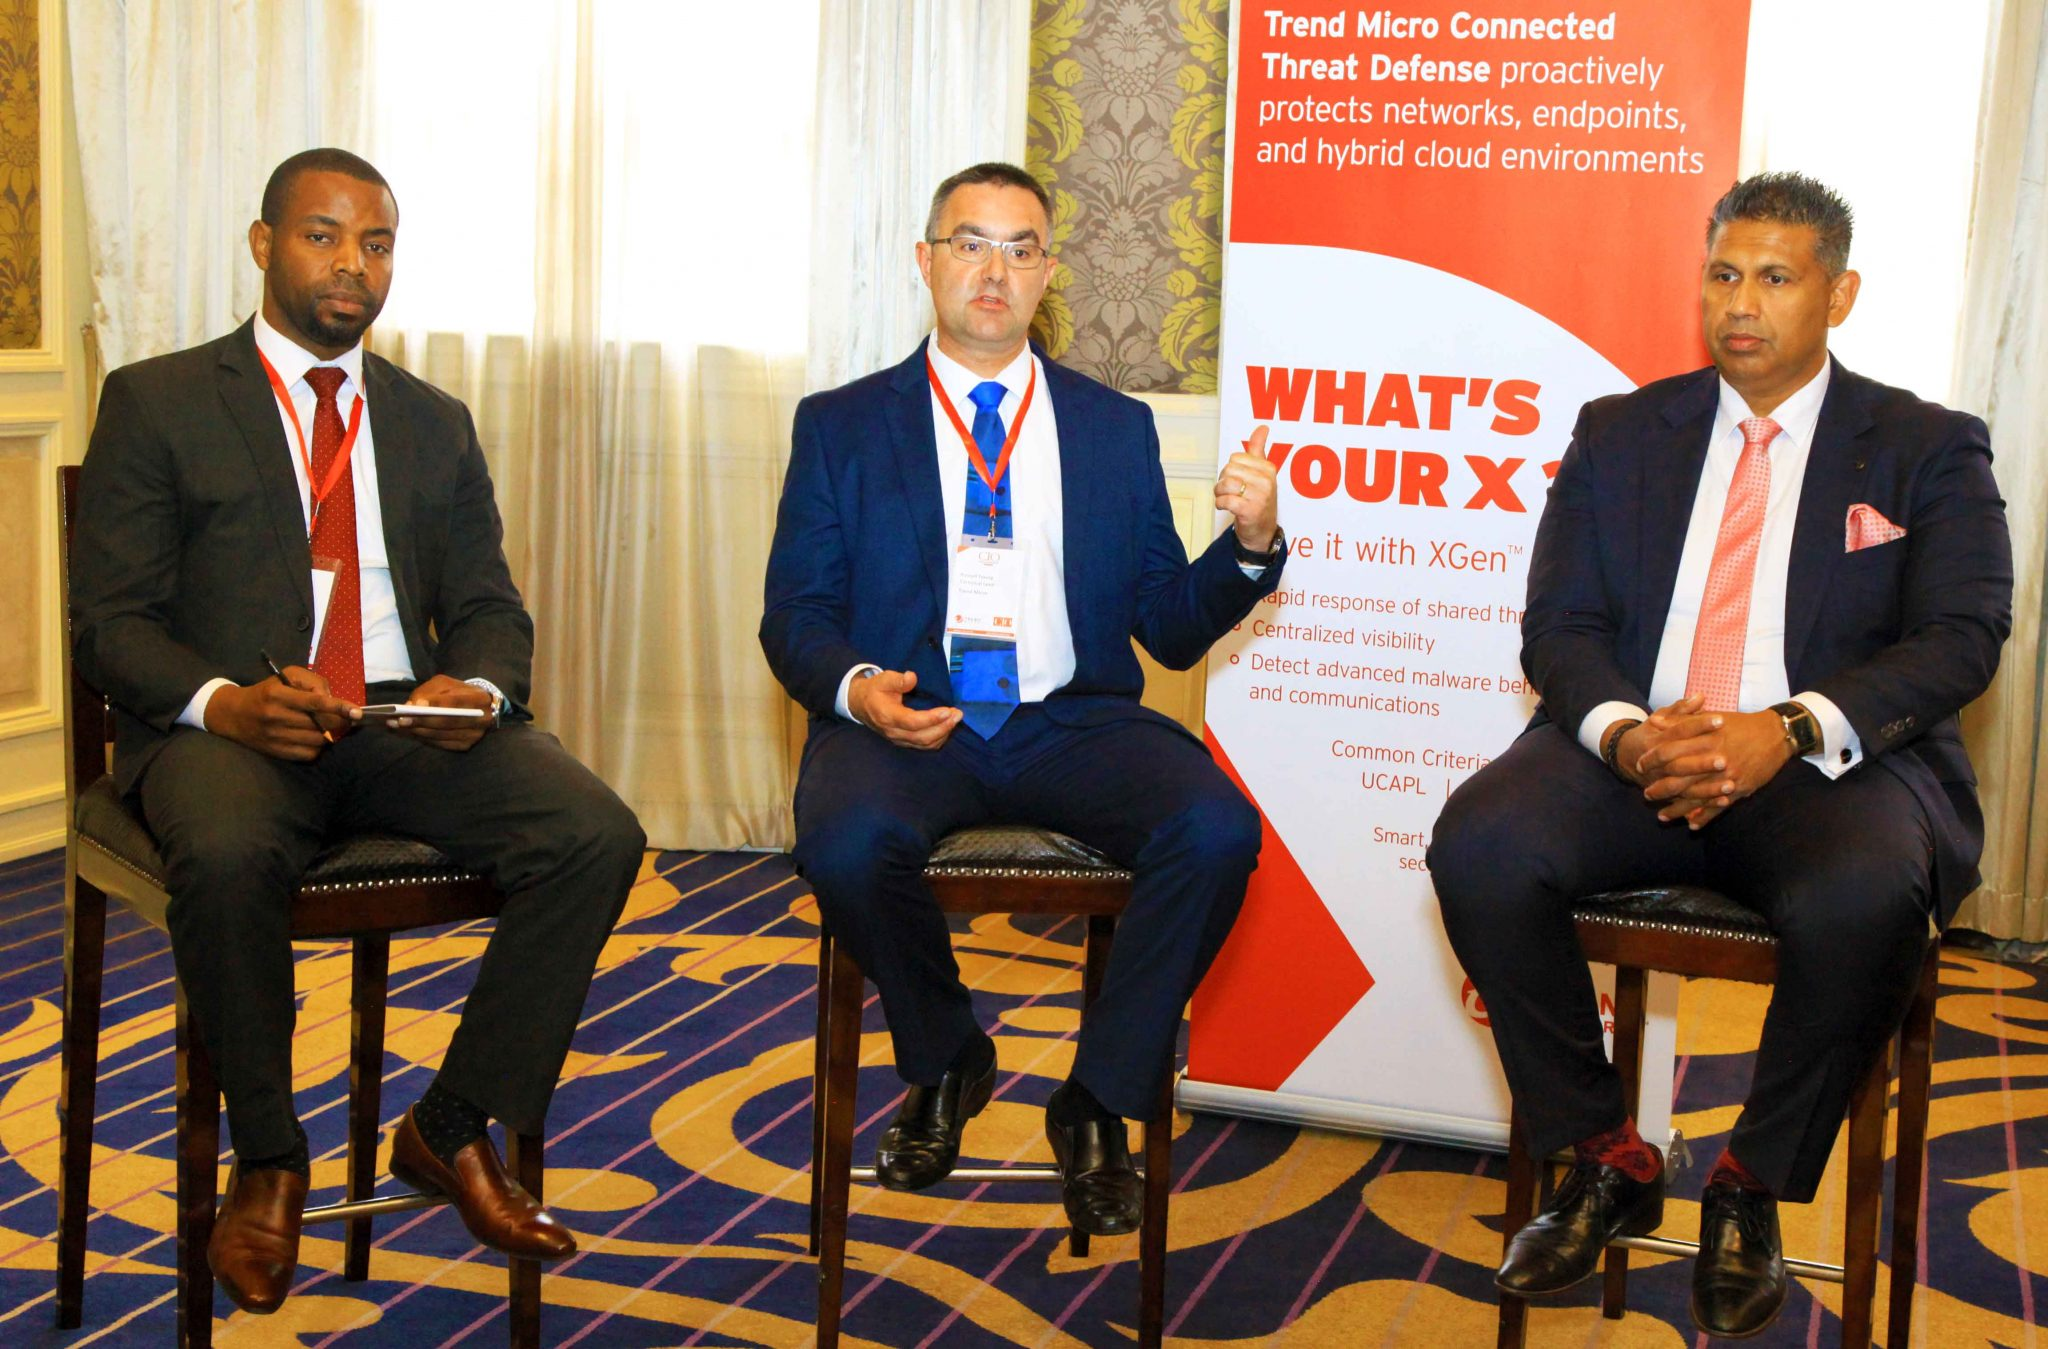 Trend Micro to hire three managers in Africa in 2019 as part of expansion plan